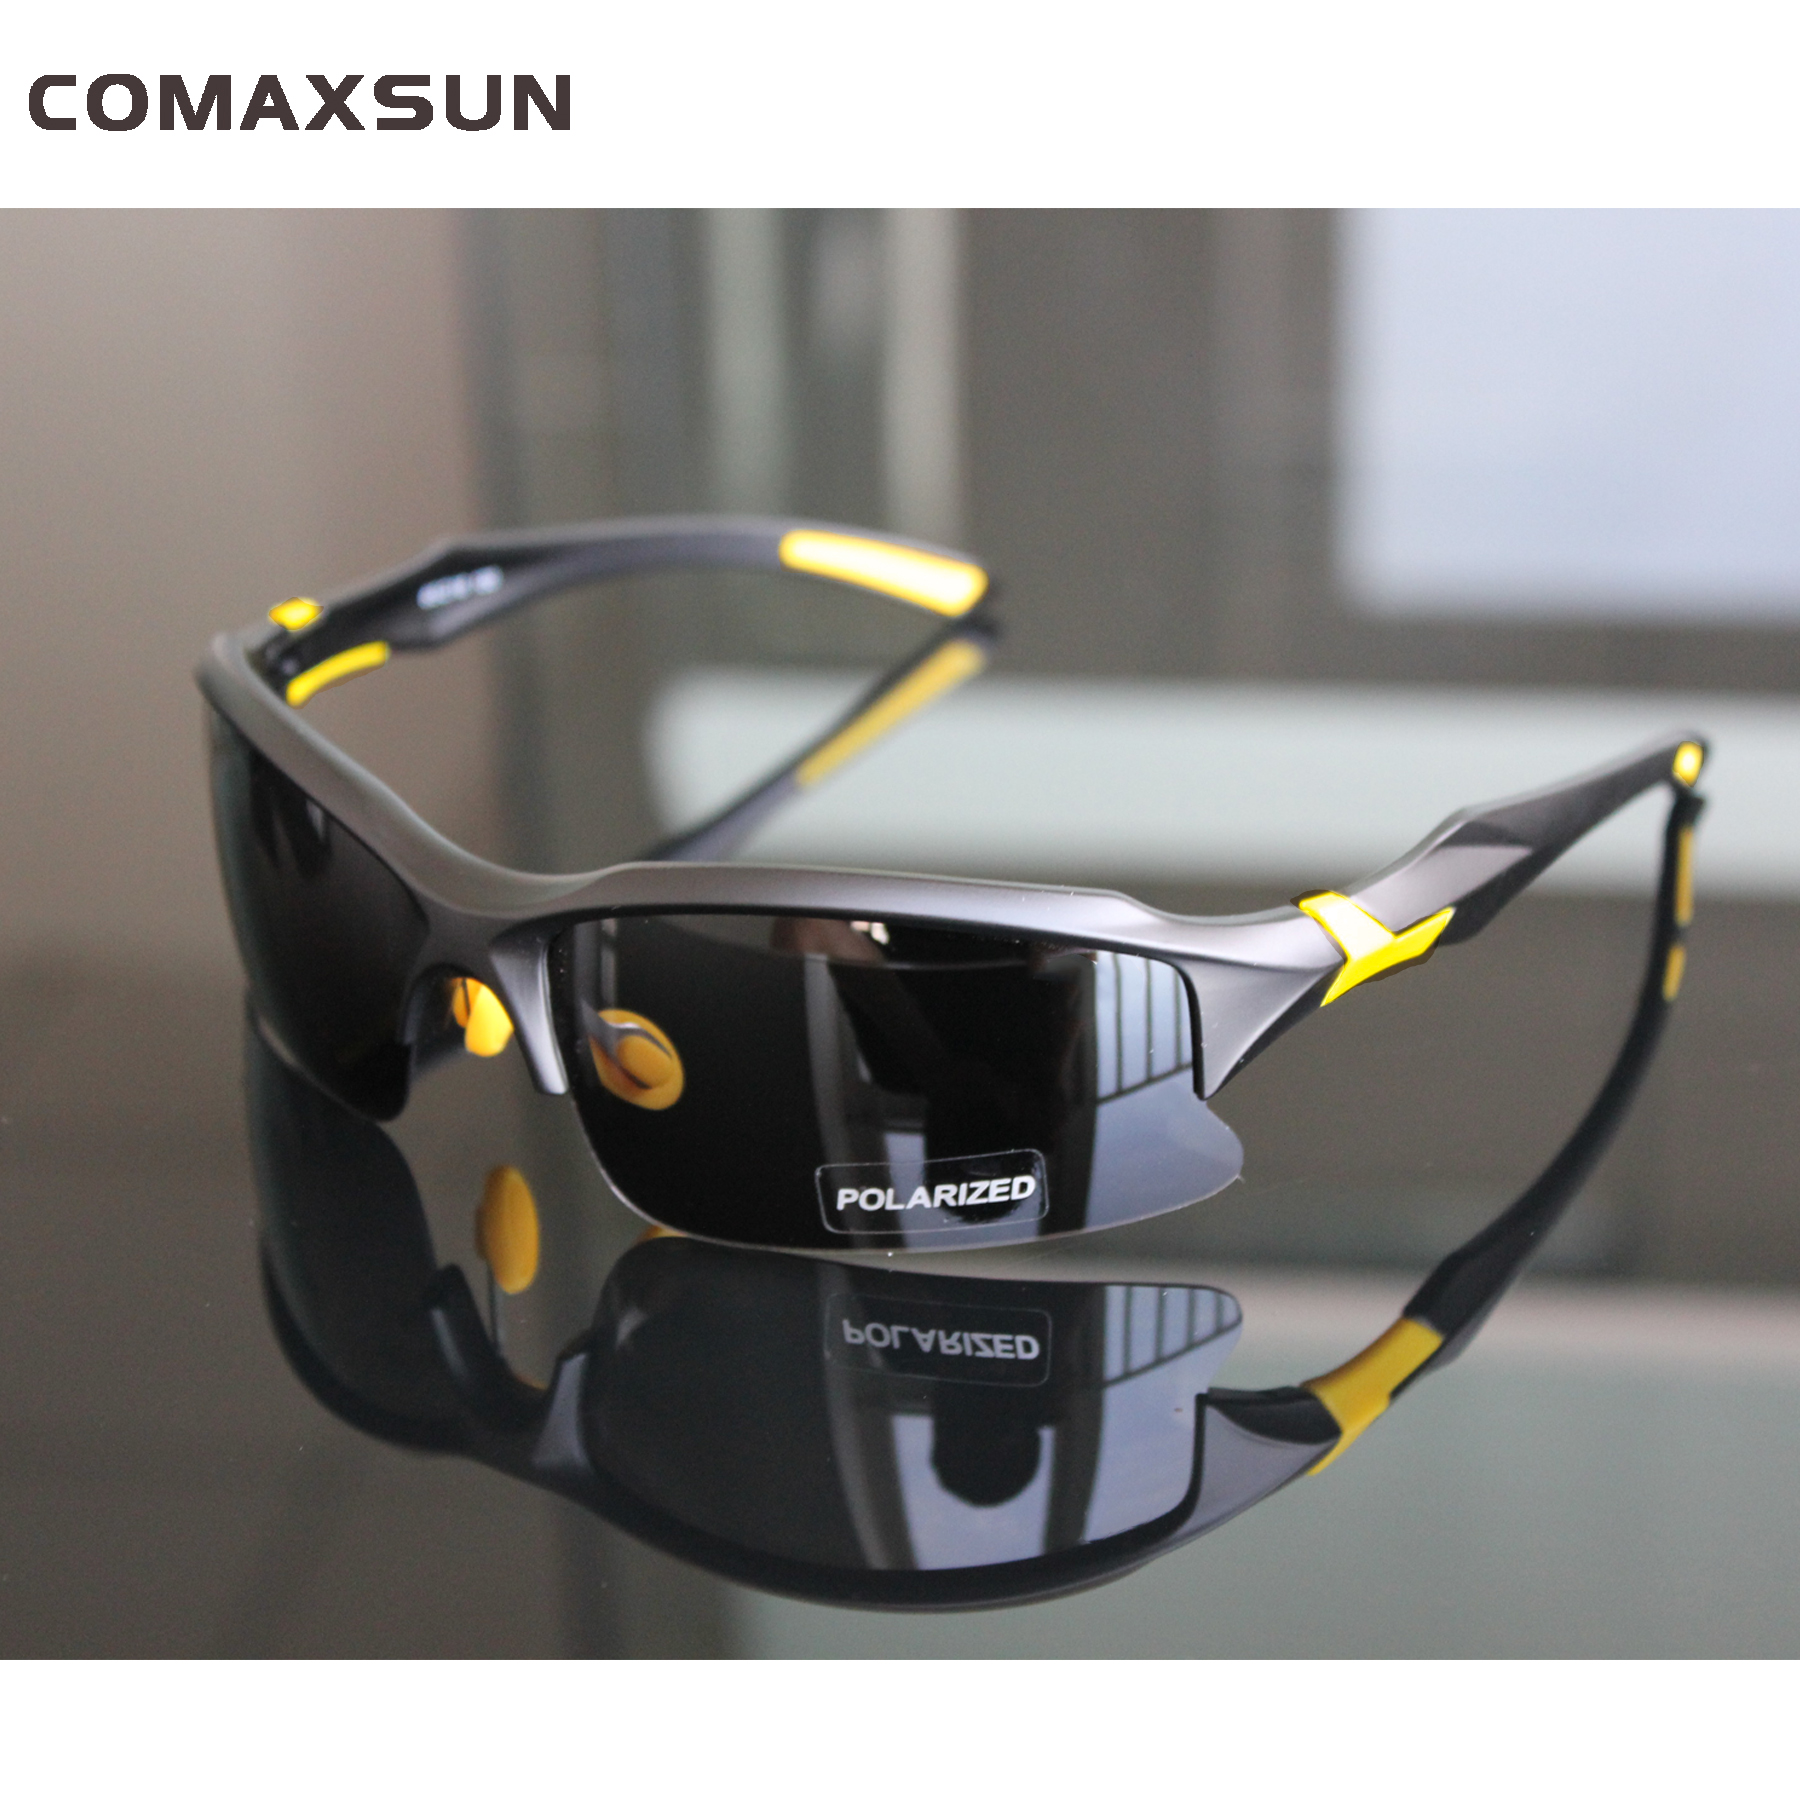 Professional Polarized Cycling Glasses Bike Bicycle Goggles Outdoor Sports Sunglasses UV 400 STS013 reflection